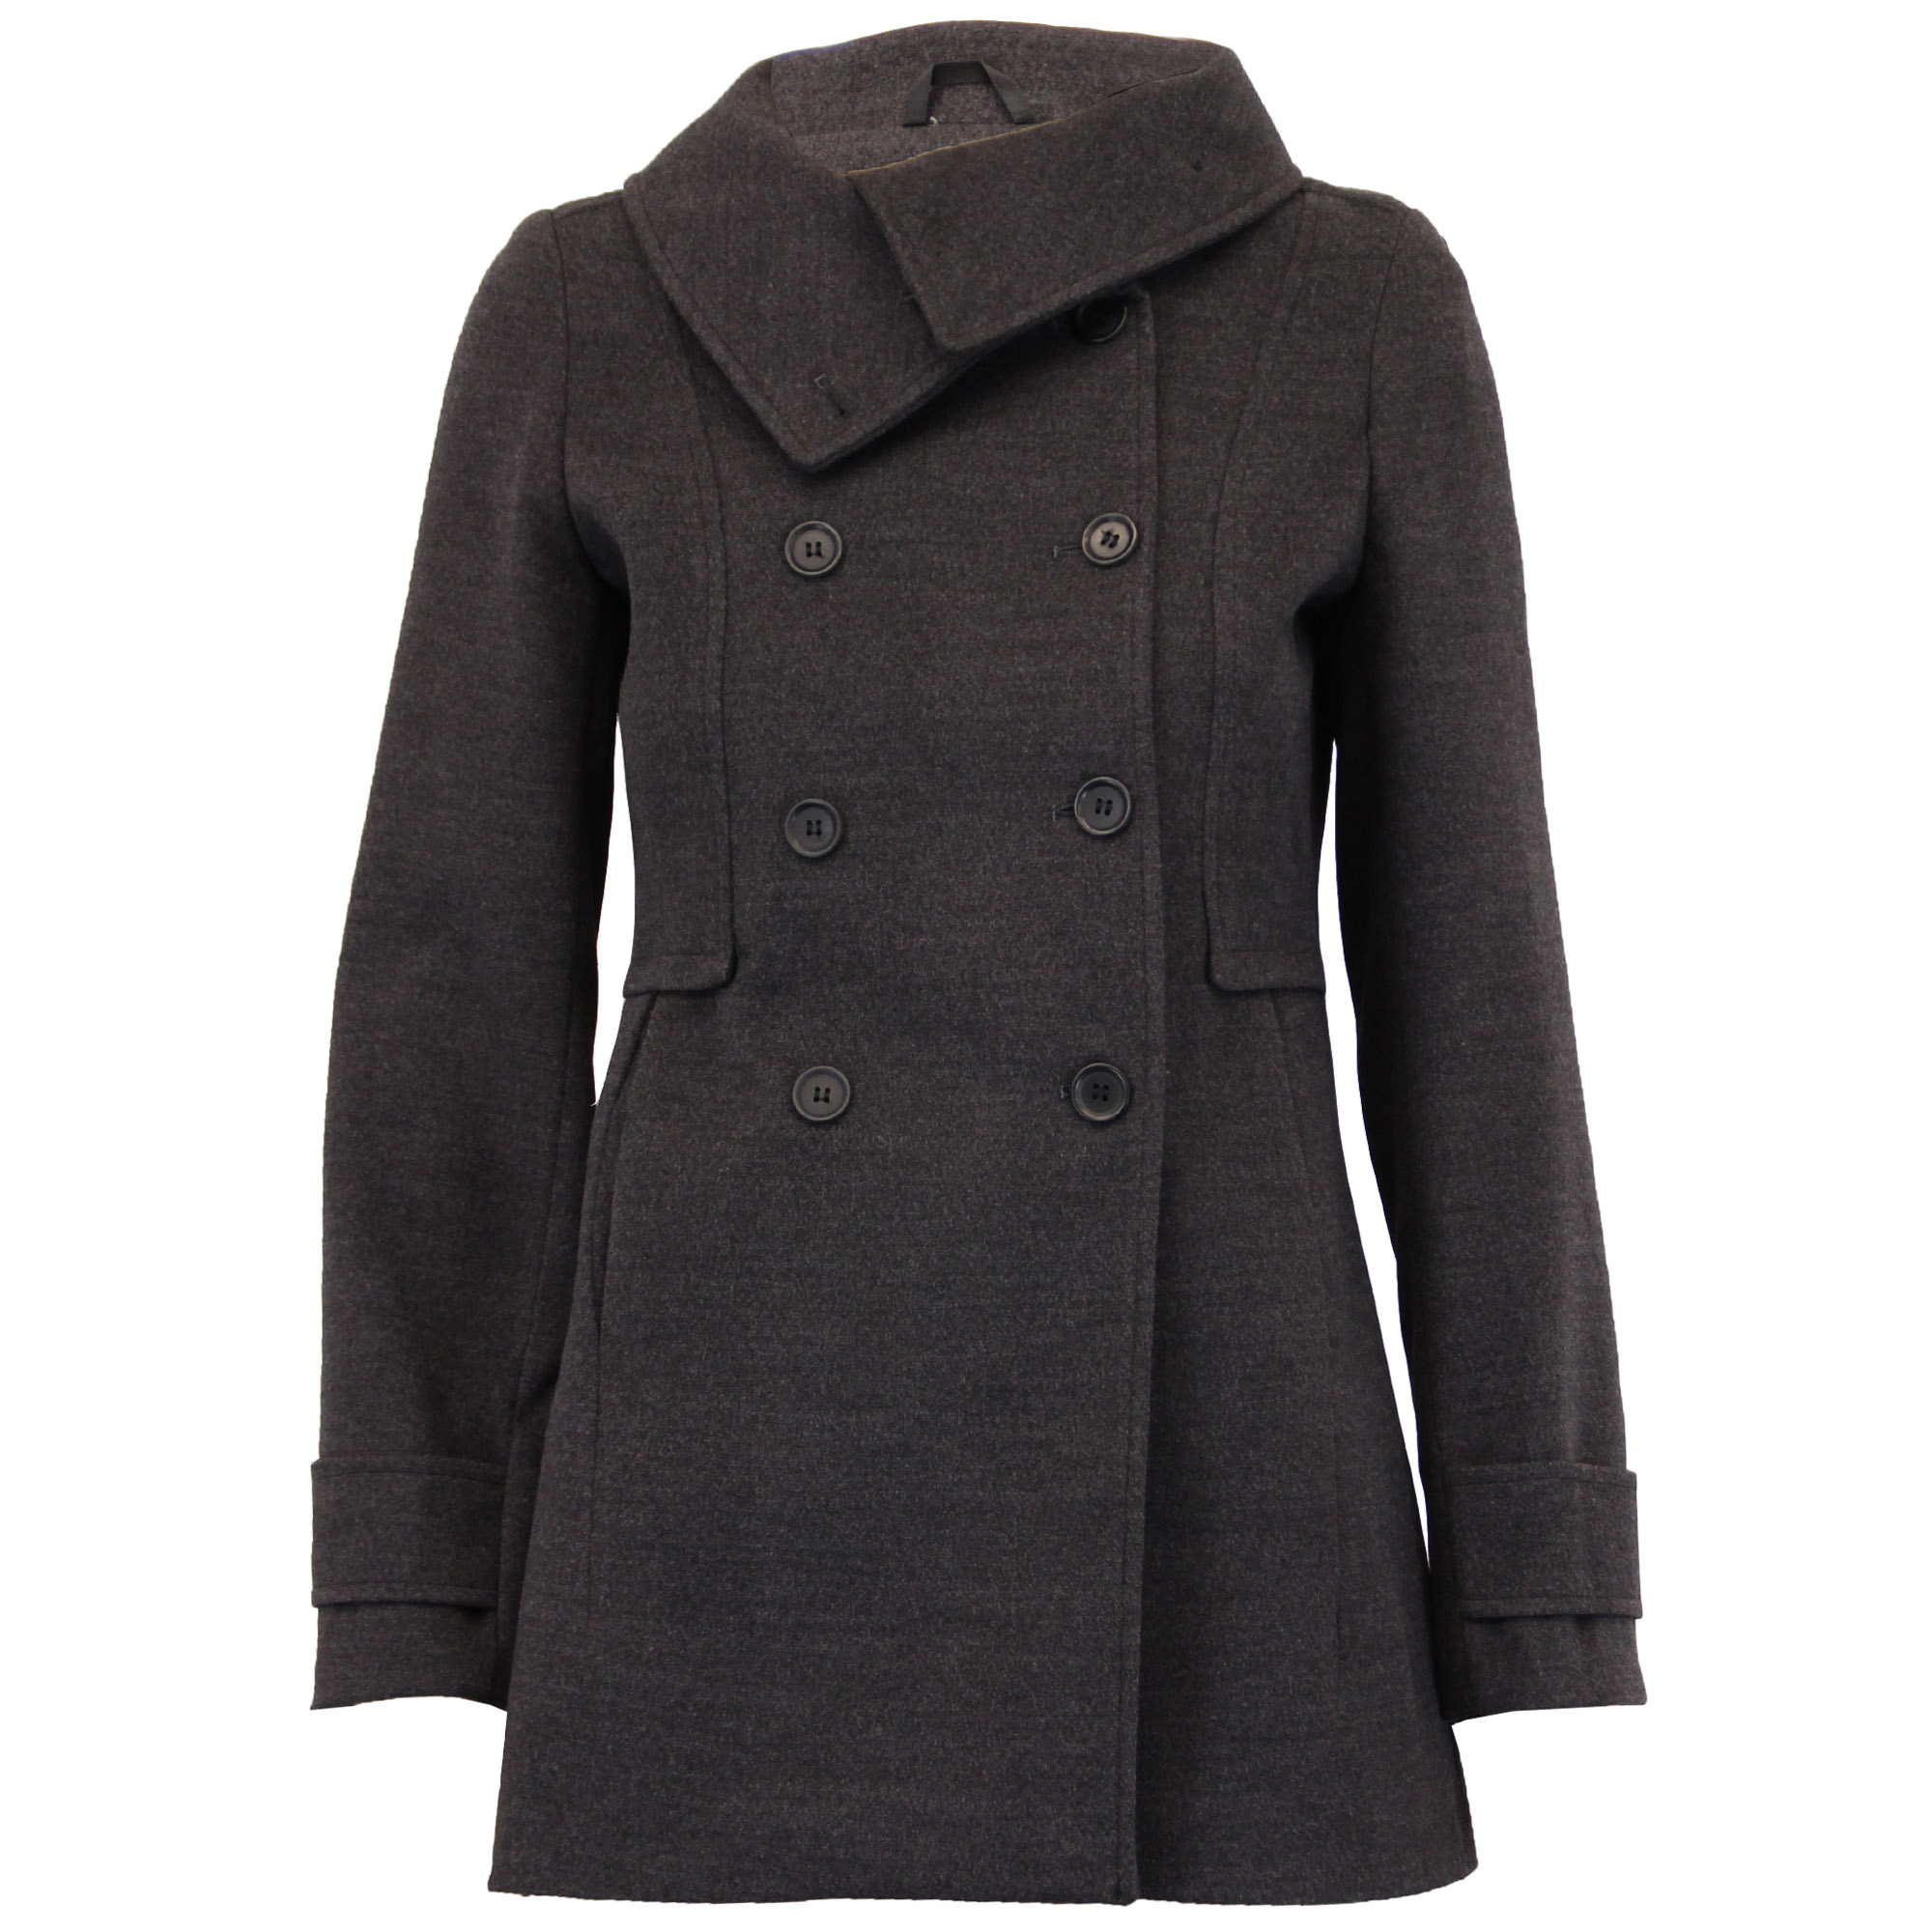 Womens wool trench coat